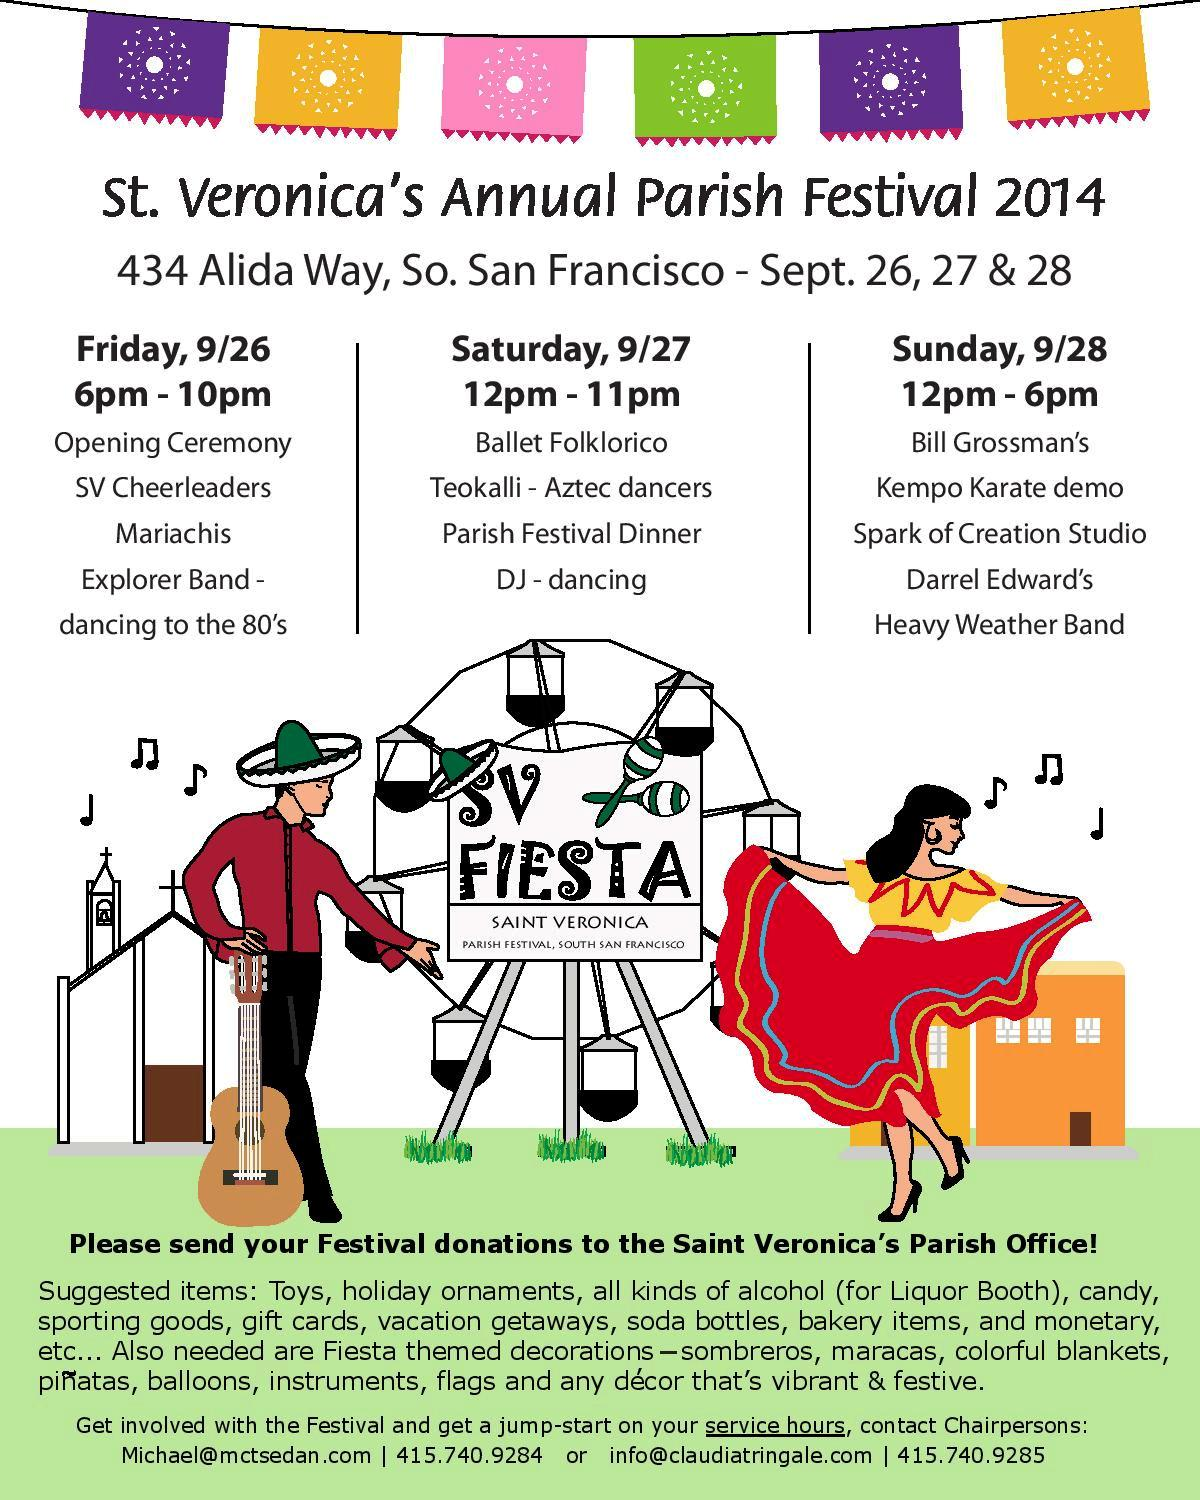 St. Veronica's Festival Next Weekend Sept 26, 27 & 28